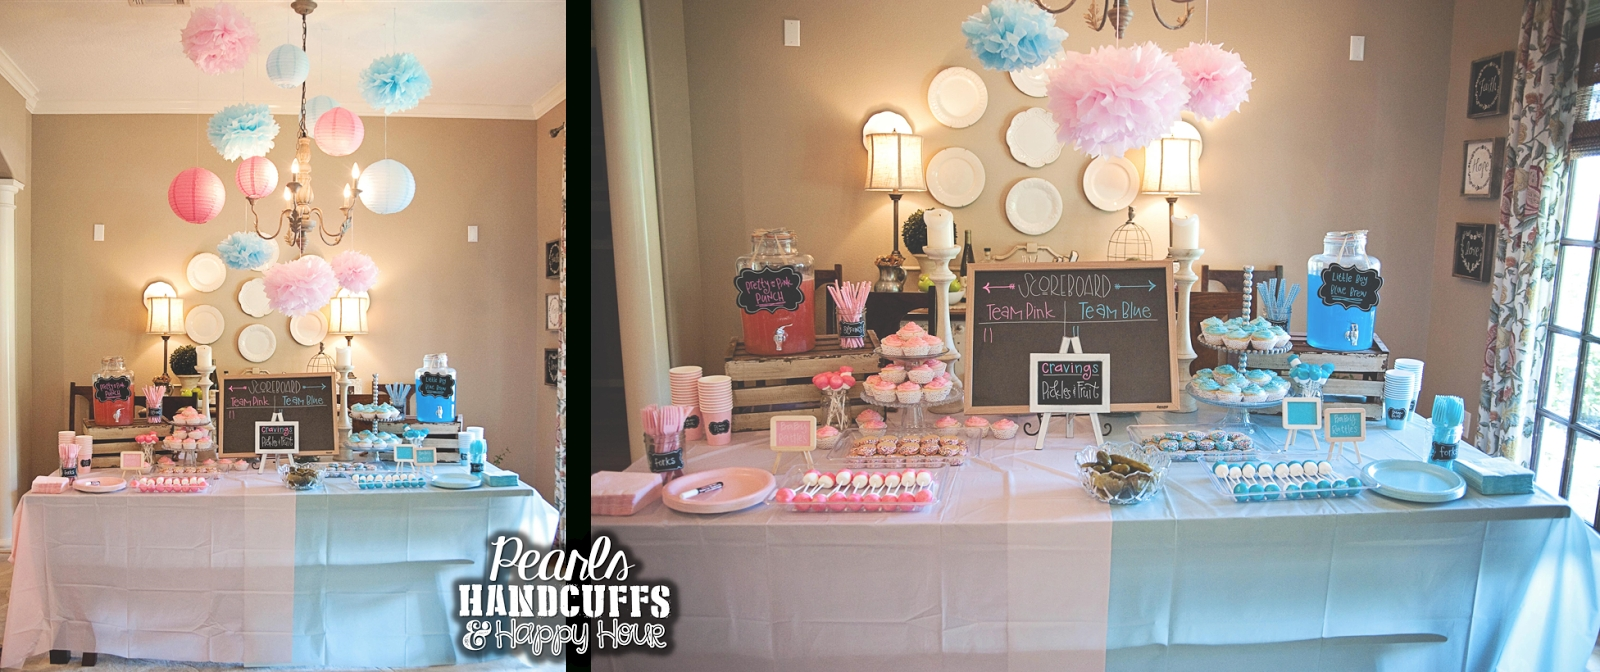 10 Unique Gender Reveal Party Gift Ideas i am thrilled to announce that my baby sister is pregnant again 2021